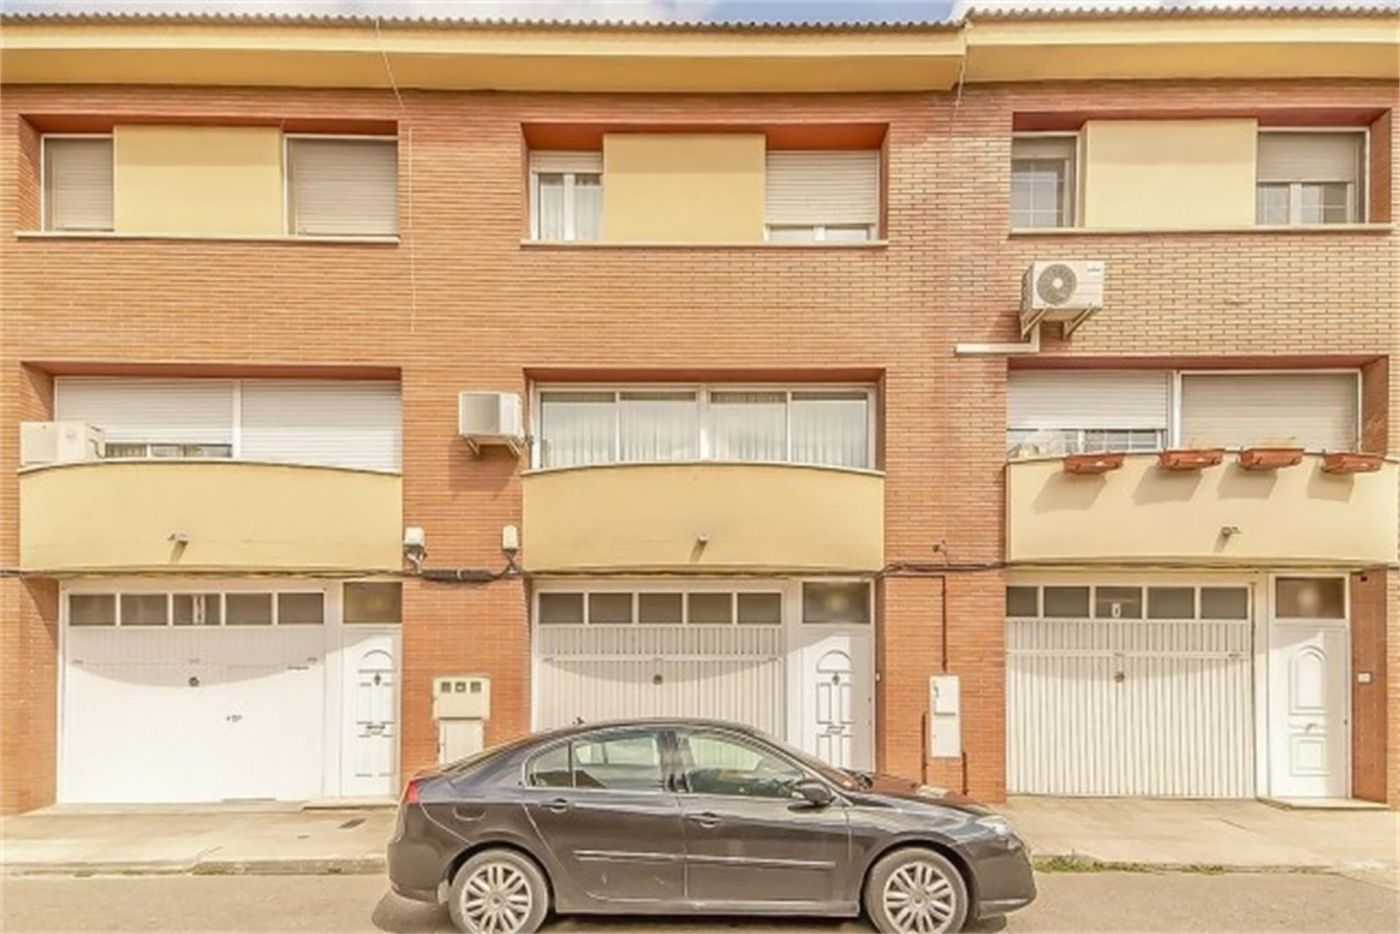 Semi detached house in Carrer sant jaume, 2b. Mollerussa / carrer sant jaume